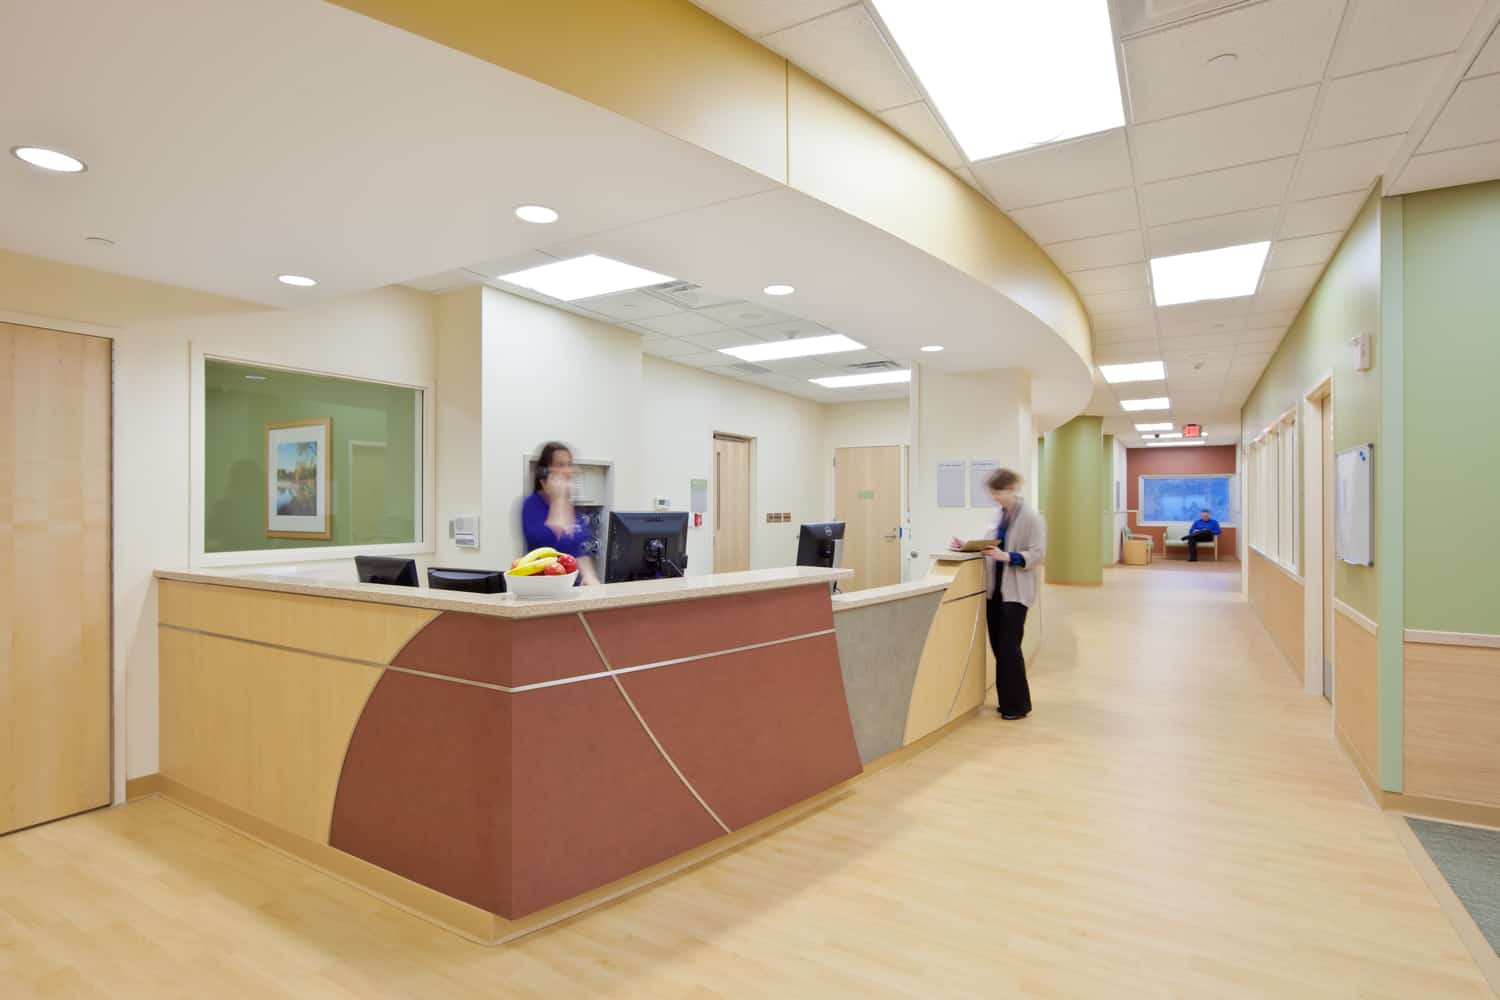 REGIONS HOSPITAL INPATIENT MENTAL HEALTH CENTER